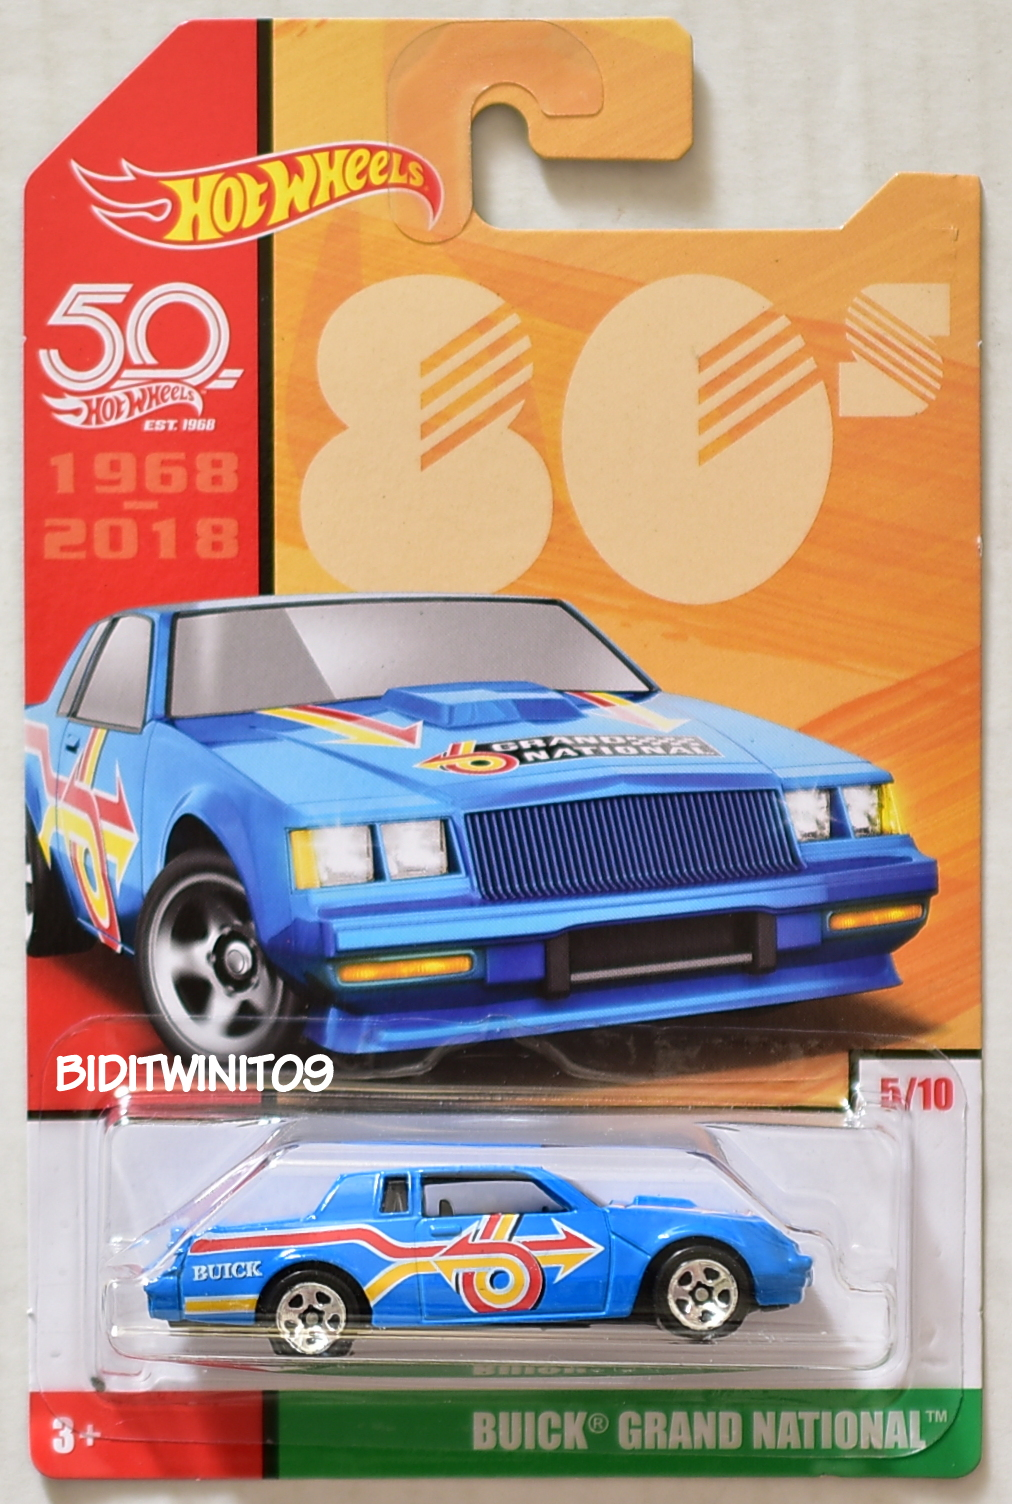 HOT WHEELS 2018 THROWBACK DECADES 50TH ANNIVERSARY BUICK GRAND NATIONAL BLUE